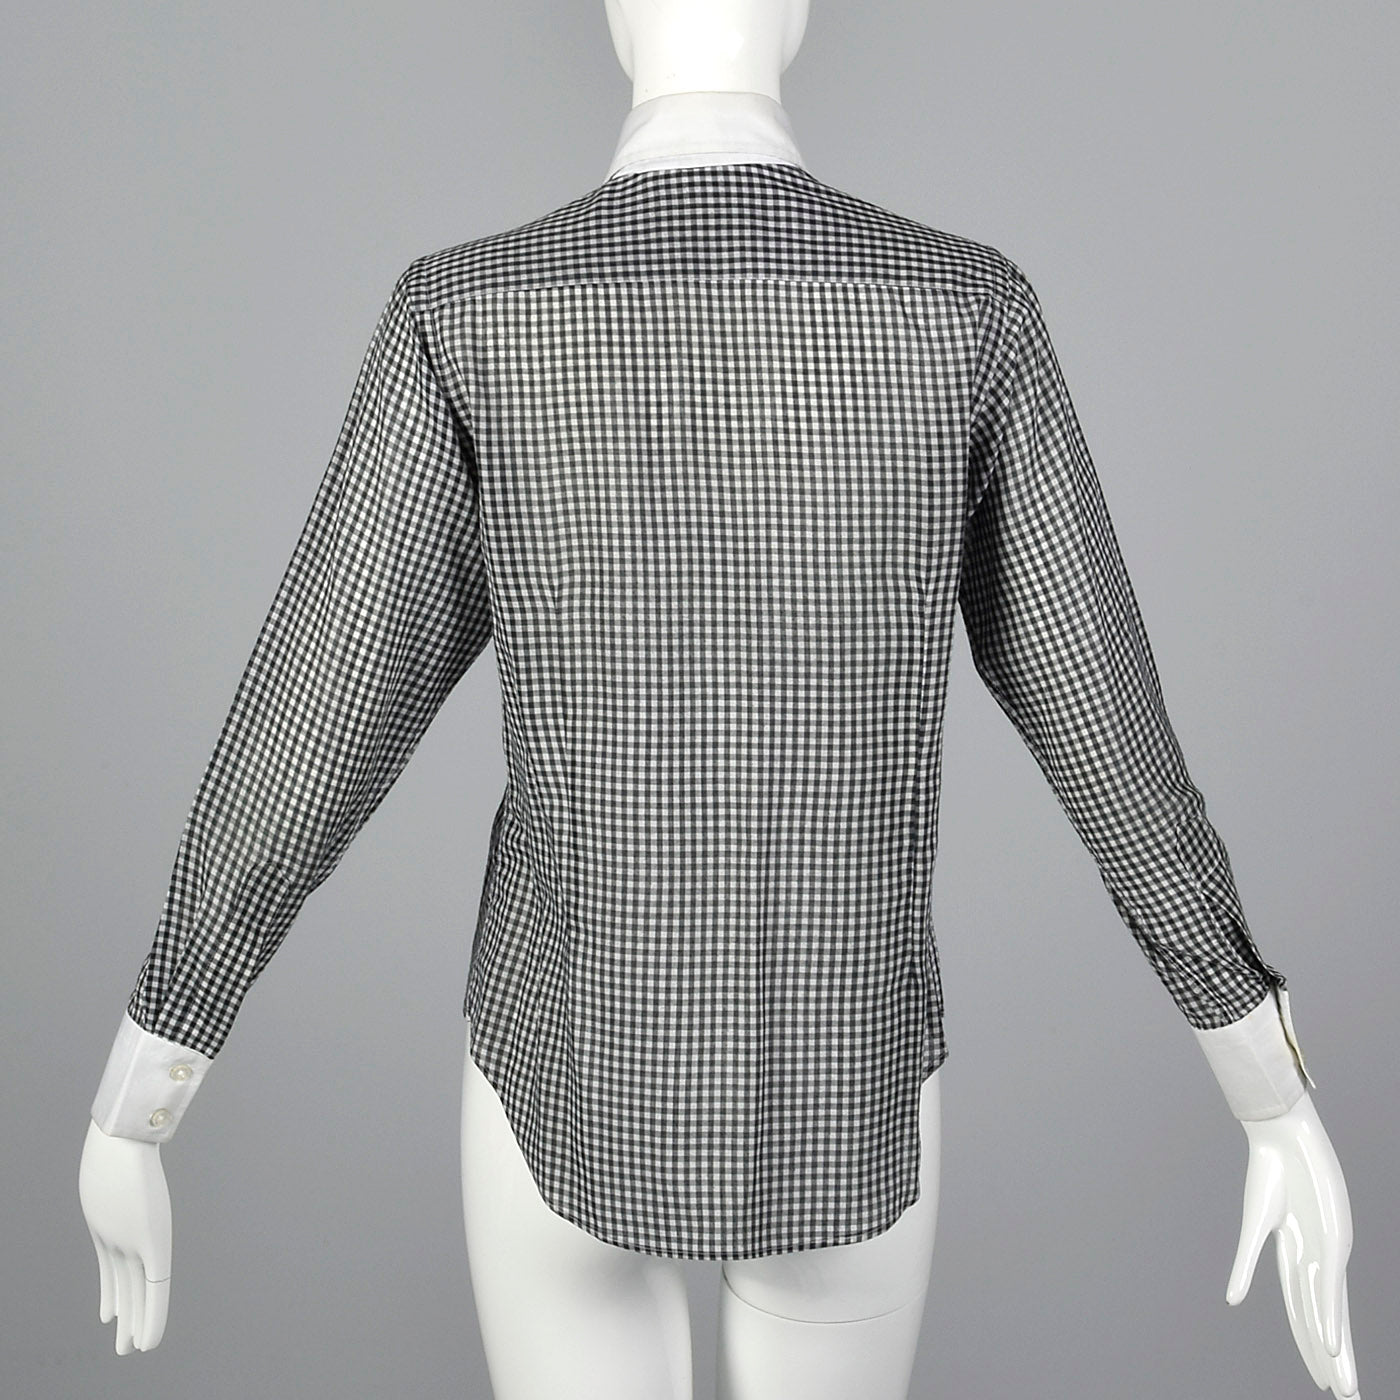 1970s Black and White Gingham Blouse